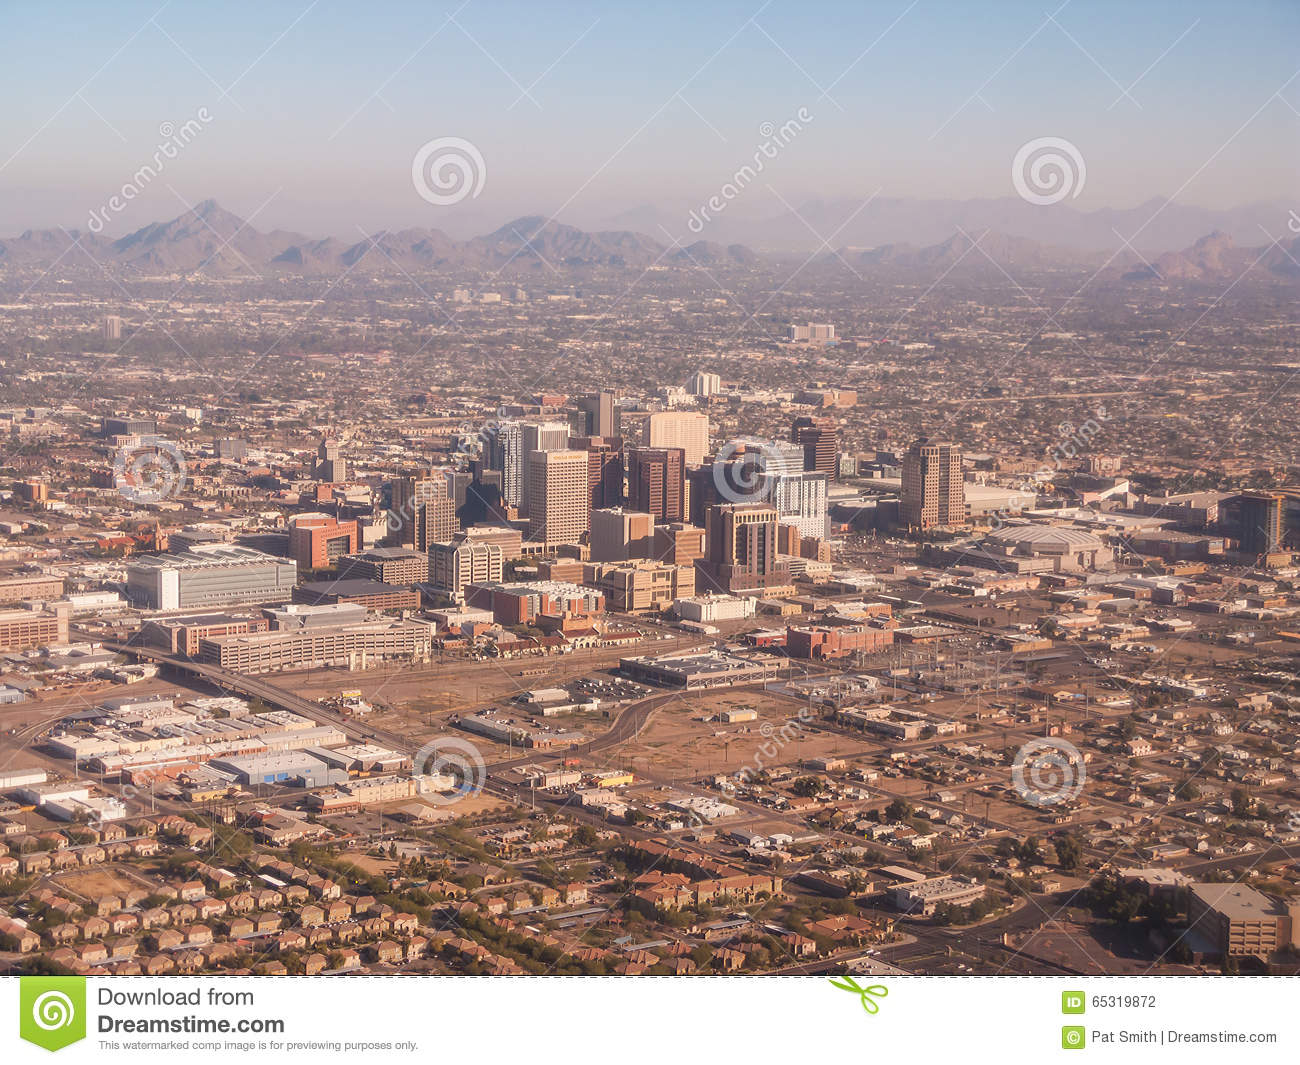 Aerial View Of Downtown Phoenix Stock Photo  Image 65319872. Early Childhood Developmental Delay. Refinance Rates In California. Mitsubishi In San Antonio Leader Garage Doors. Personal Loans Bad Credit Rating. Experian Credit Score Free Trial. Occupational Therapy Online Schools. Painful Dental Procedures Arizona Pool Repair. Malpractice Attorney Maryland